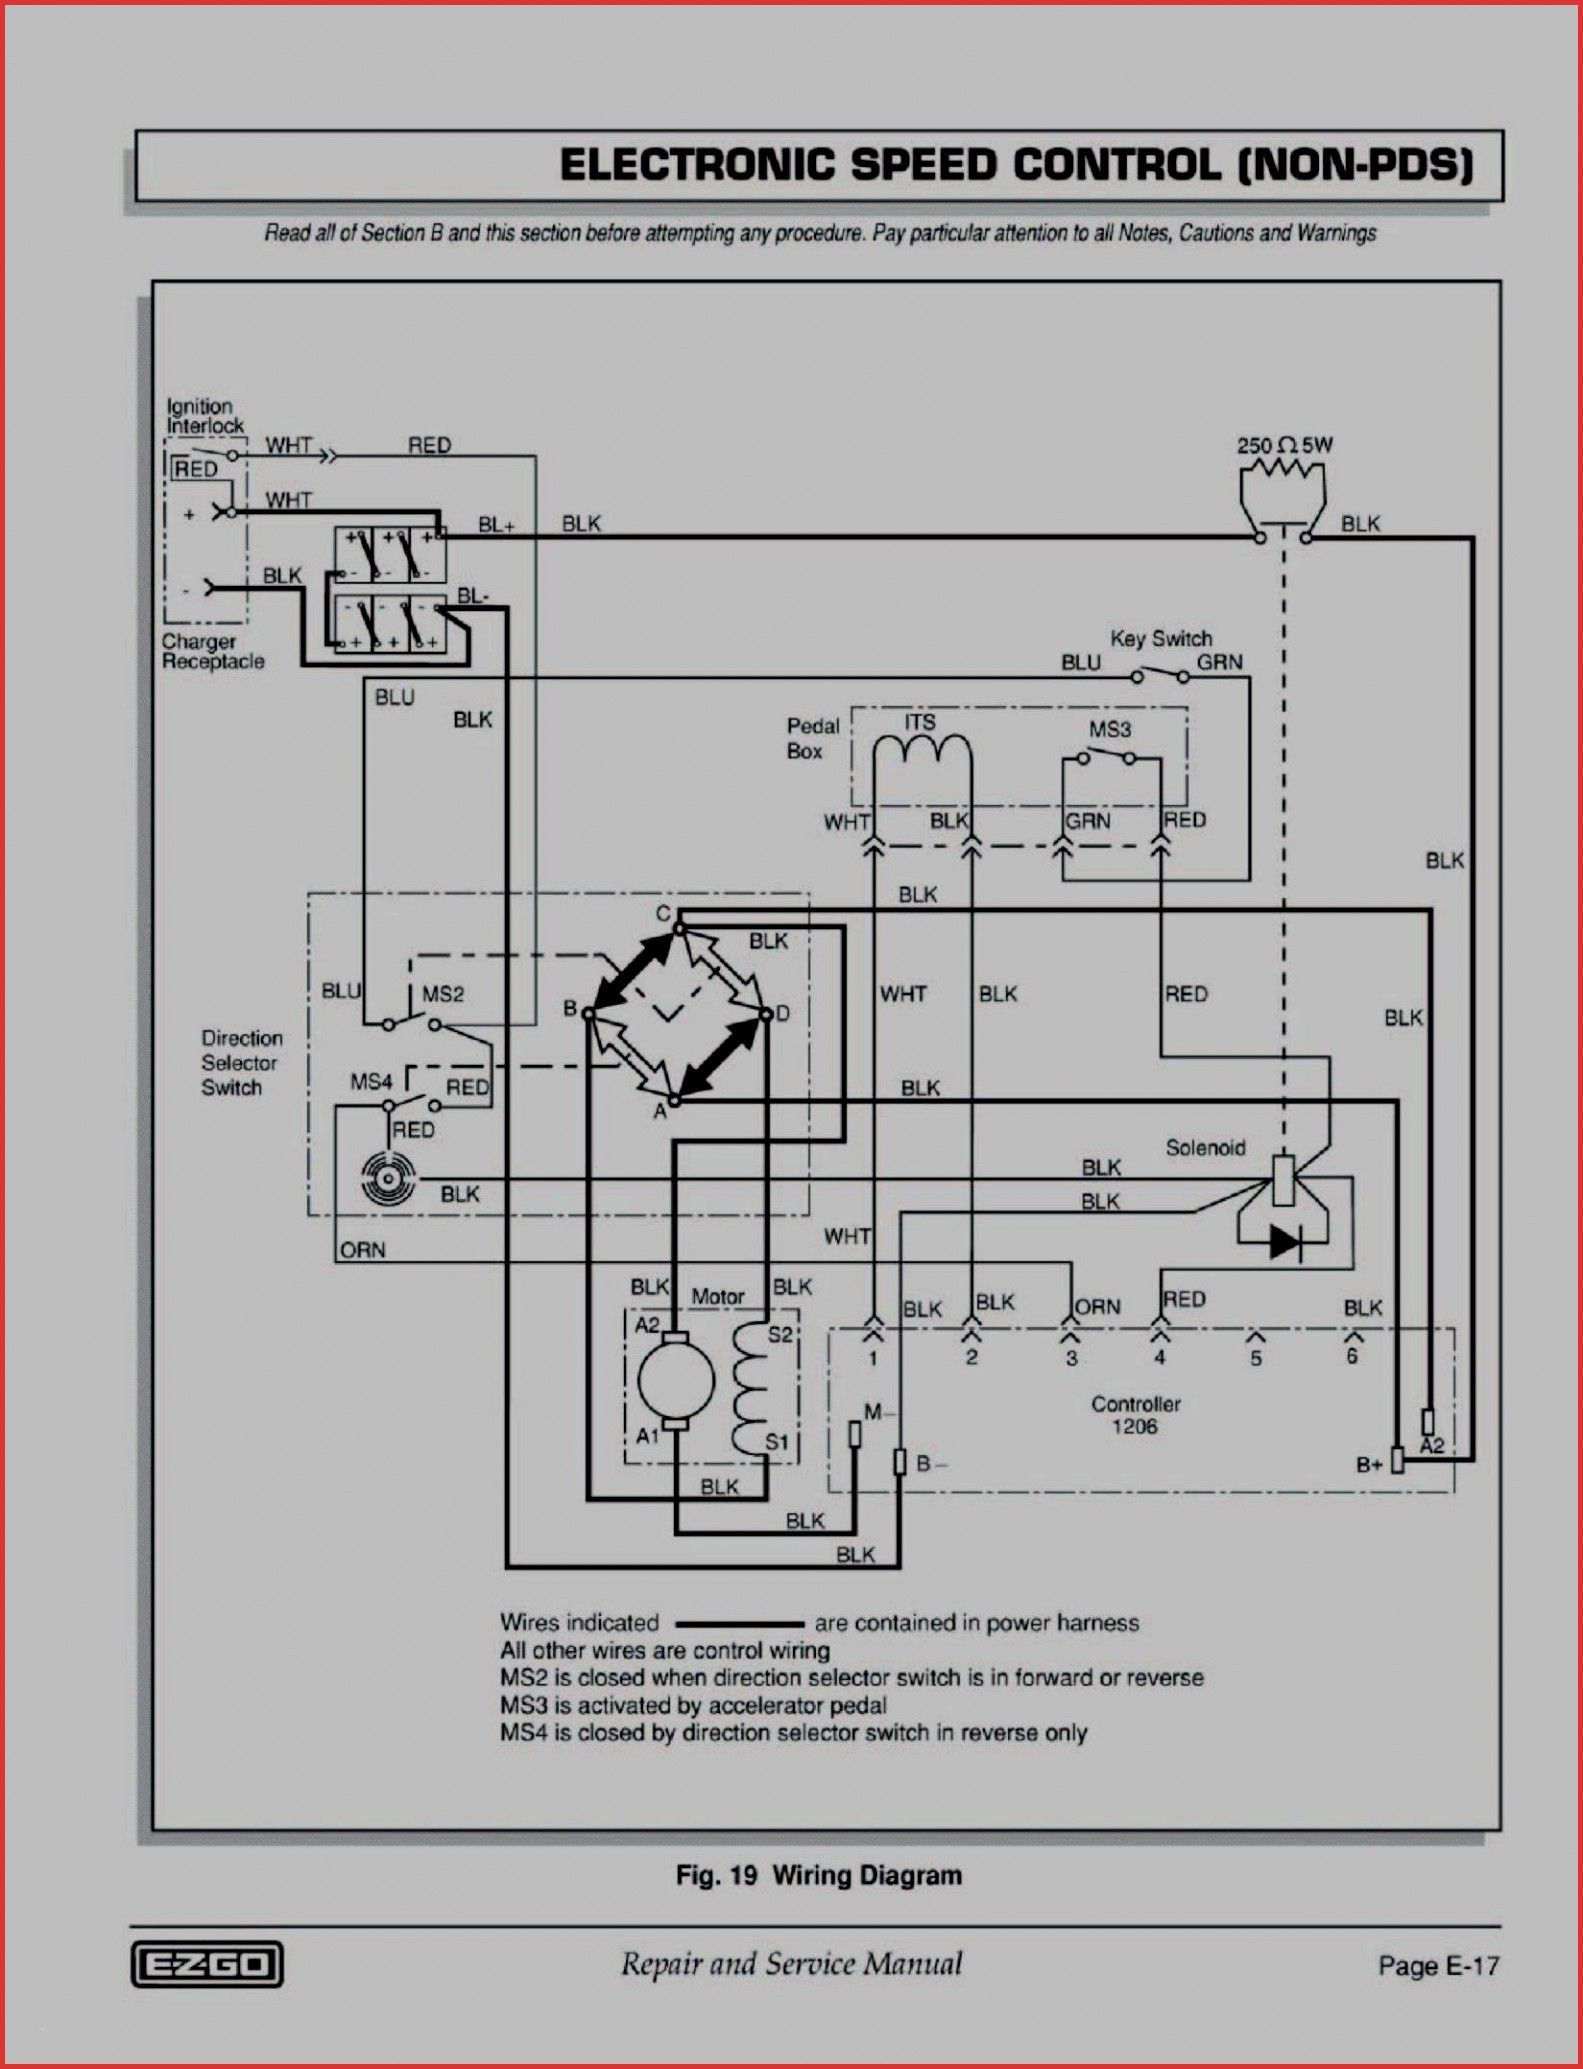 New Ezgo Txt Headlight Wiring Diagram  Diagram  Diagramsample  Diagramtemplate  Wiringdiagram